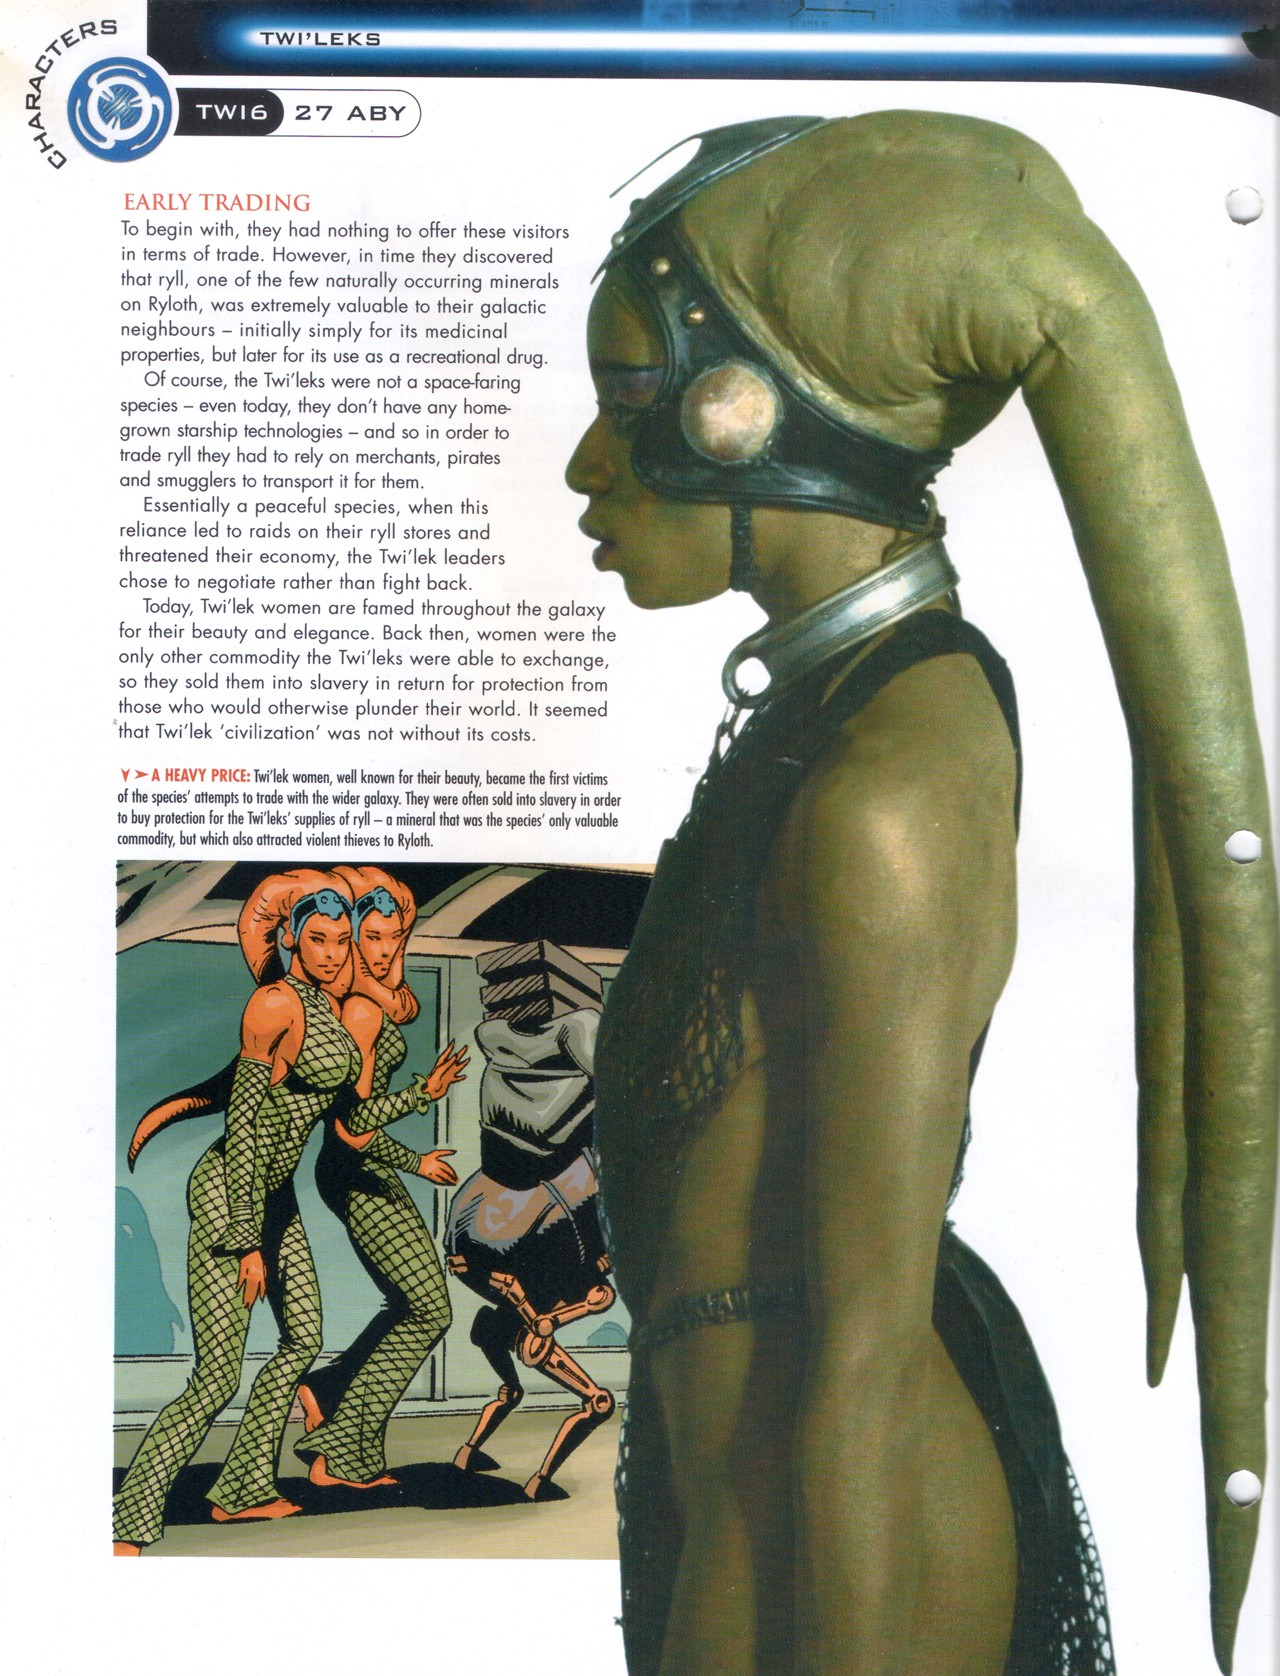 Star Wars' Black Slave - MerriCatherine - Medium